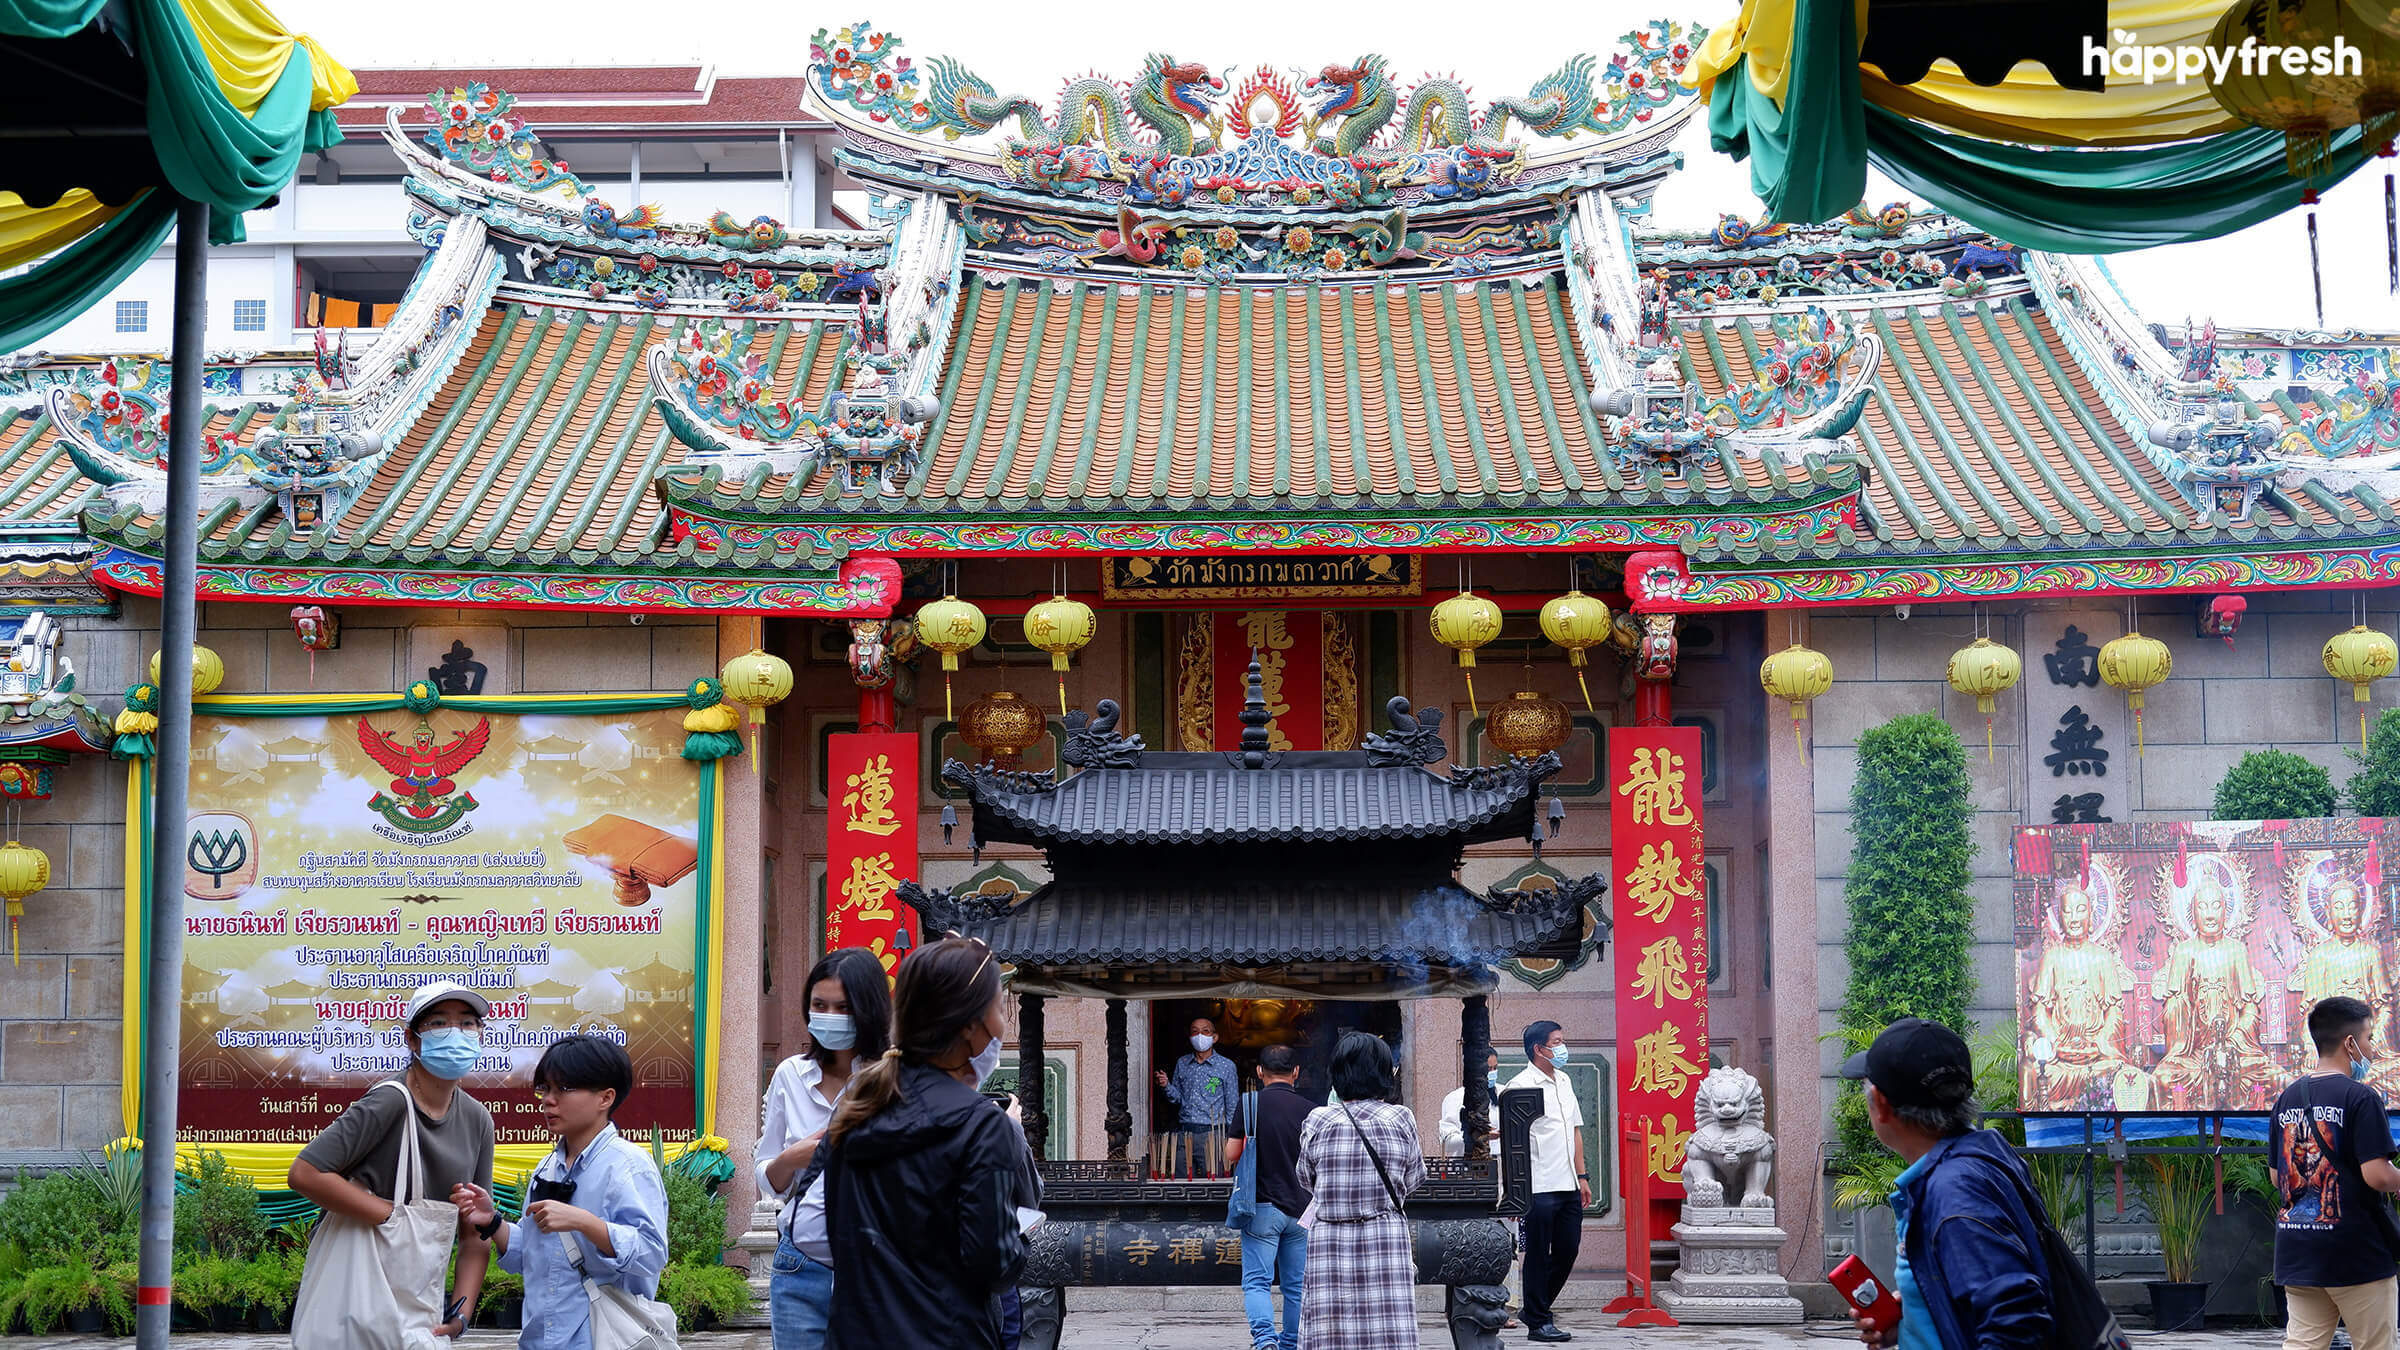 HappyFresh_Visit_6_Chinese_Shrines_In_Chinatown_Wat_Mangkon